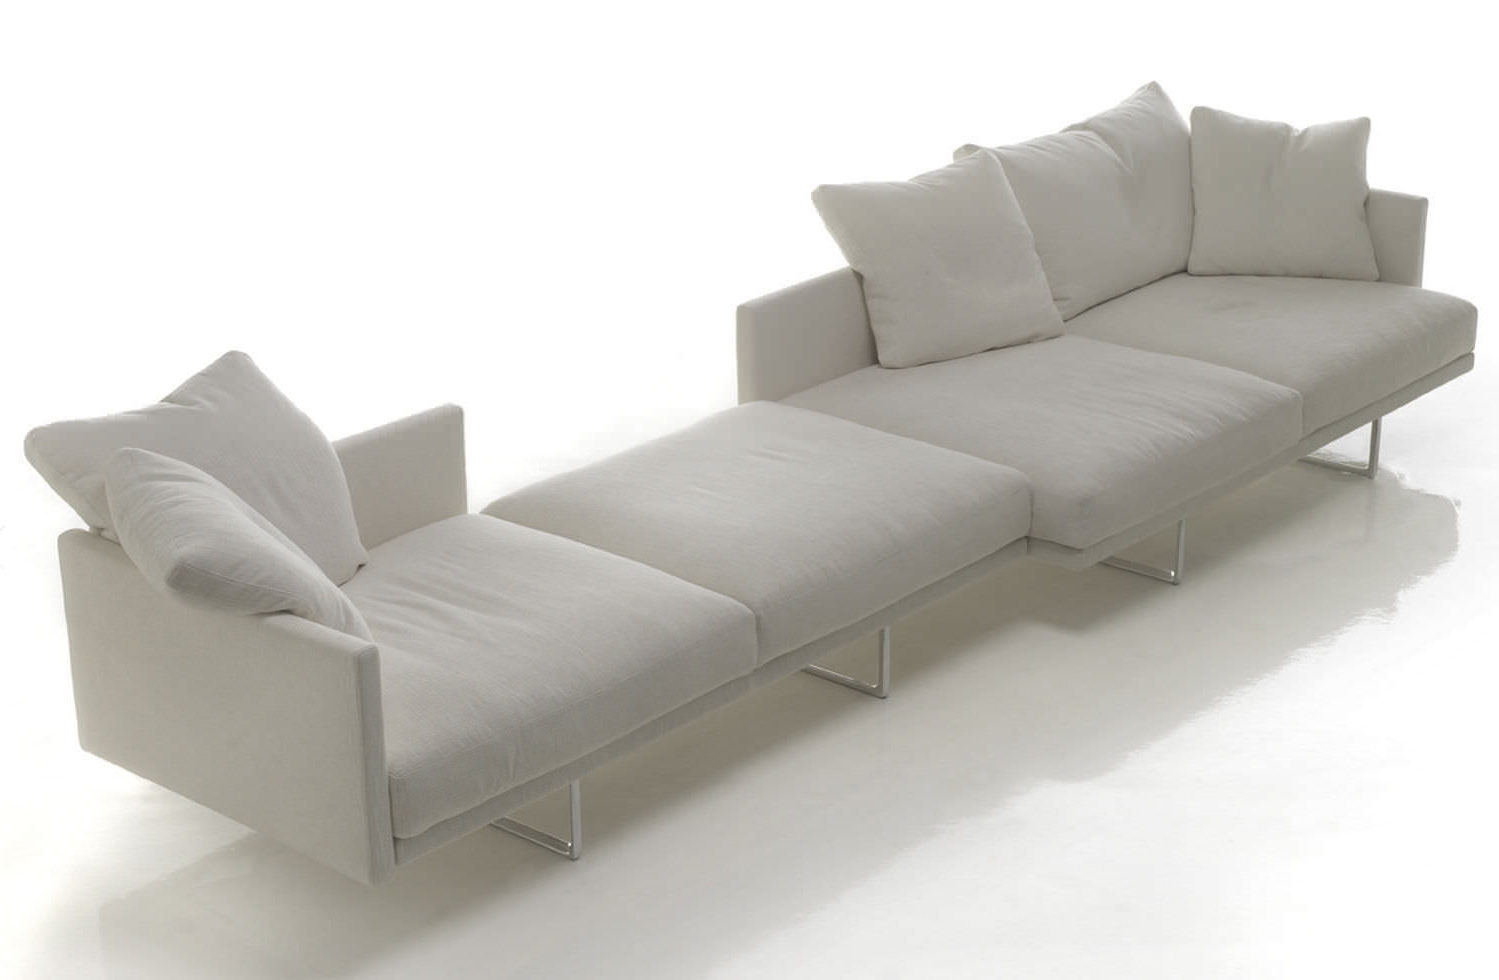 Stunning Design Ideas Of Modular Sofas For Small Spaces (View 11 of 15)